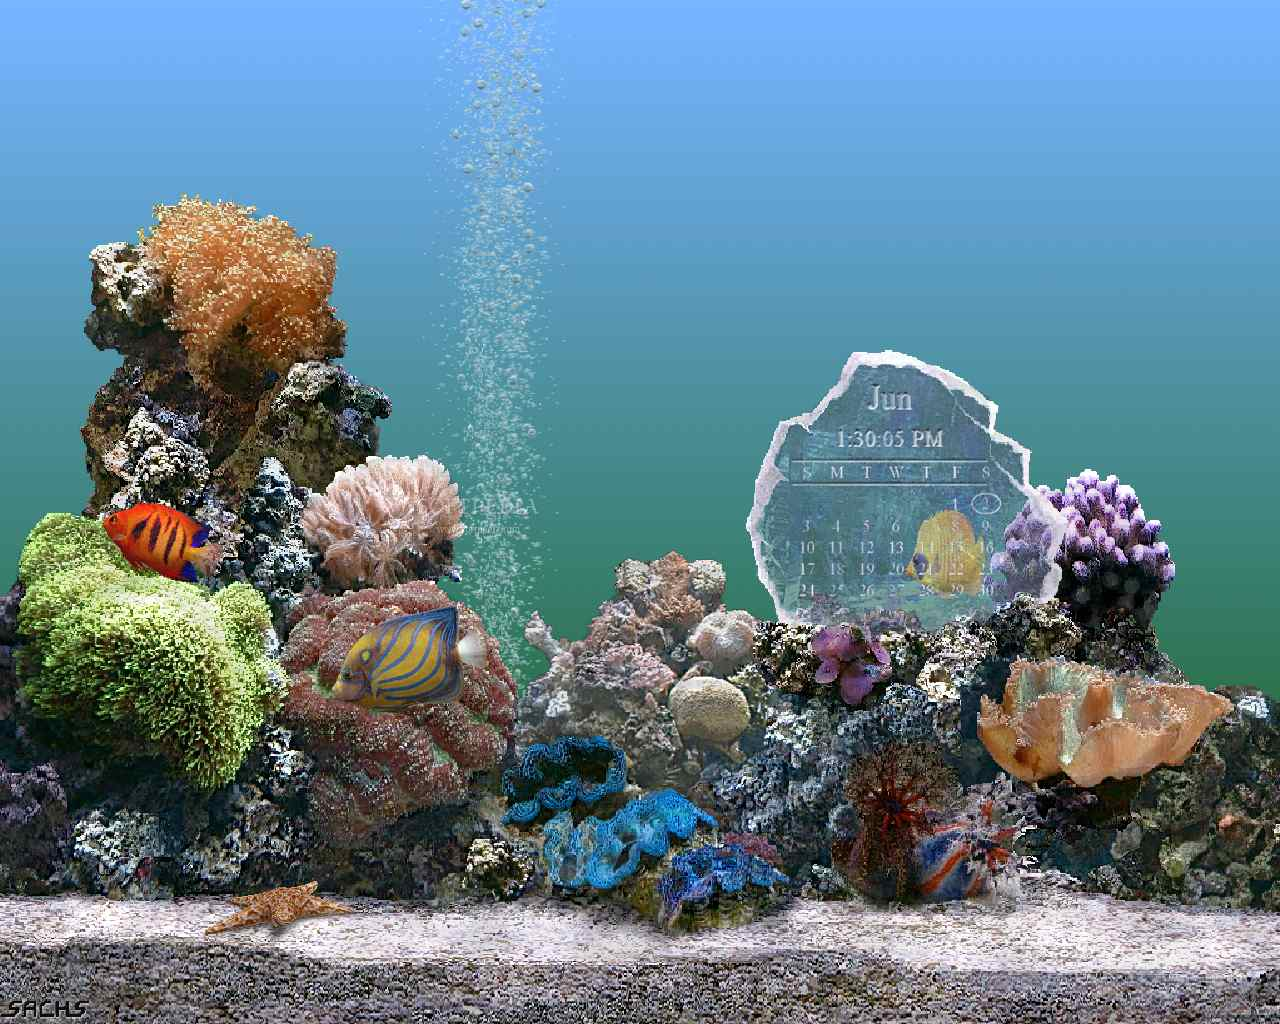 SereneScreen Marine Aquarium Time 2.6